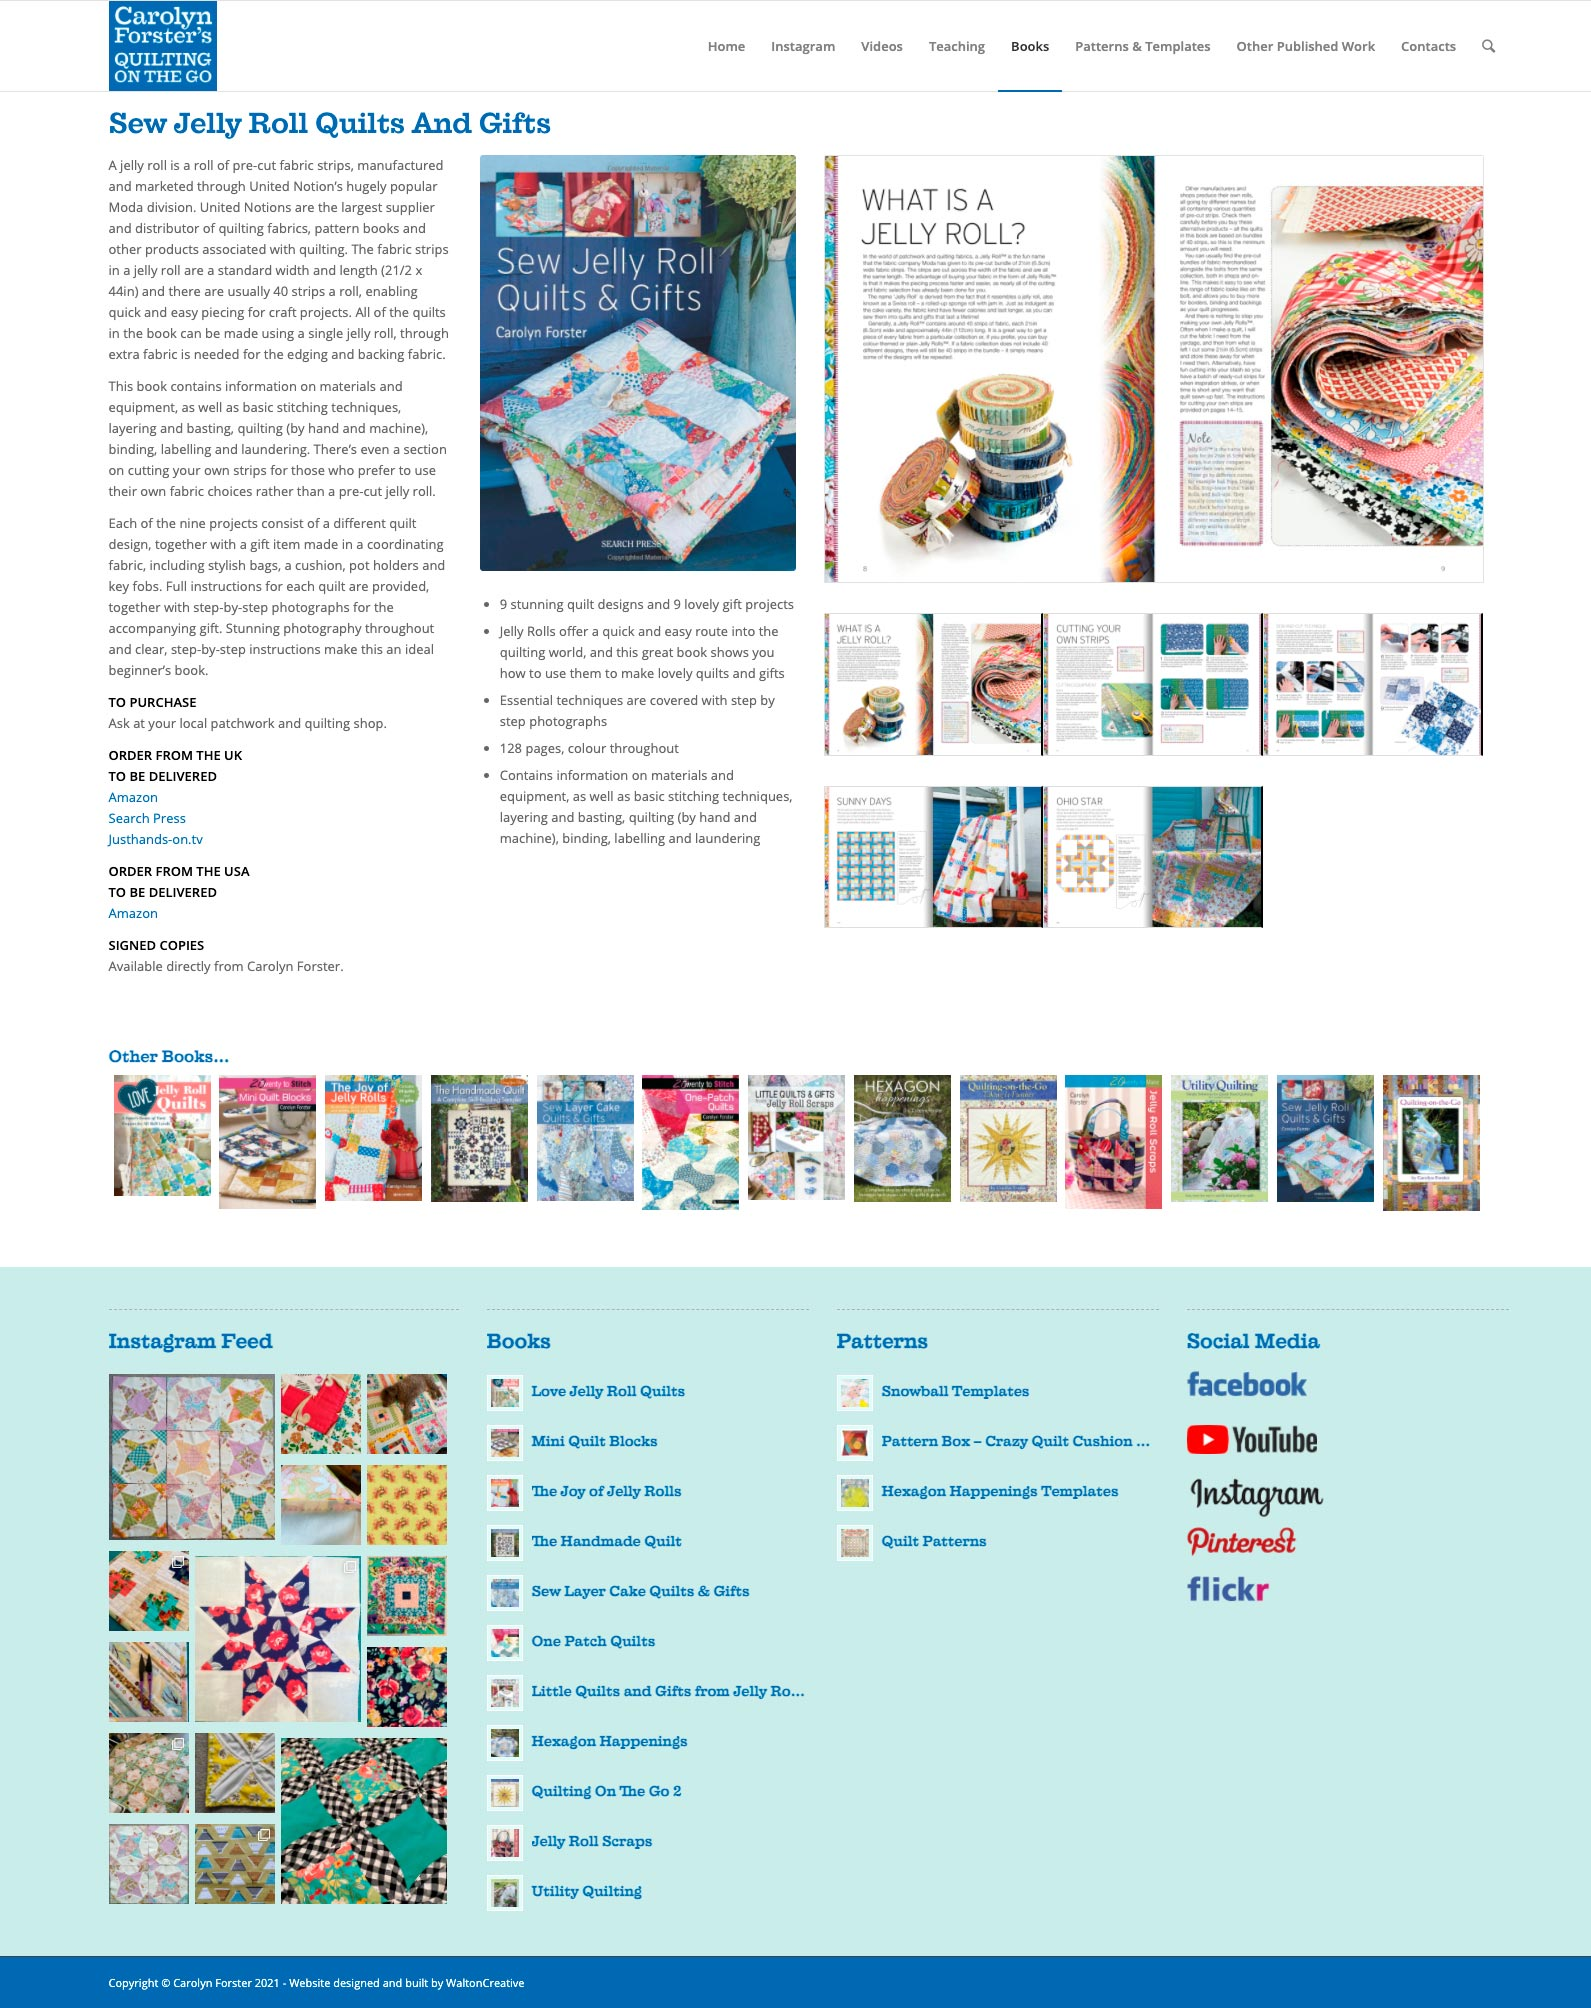 Carolyn Forster's Website Design 7 Sew Jelly Roll Quilts and Gifts